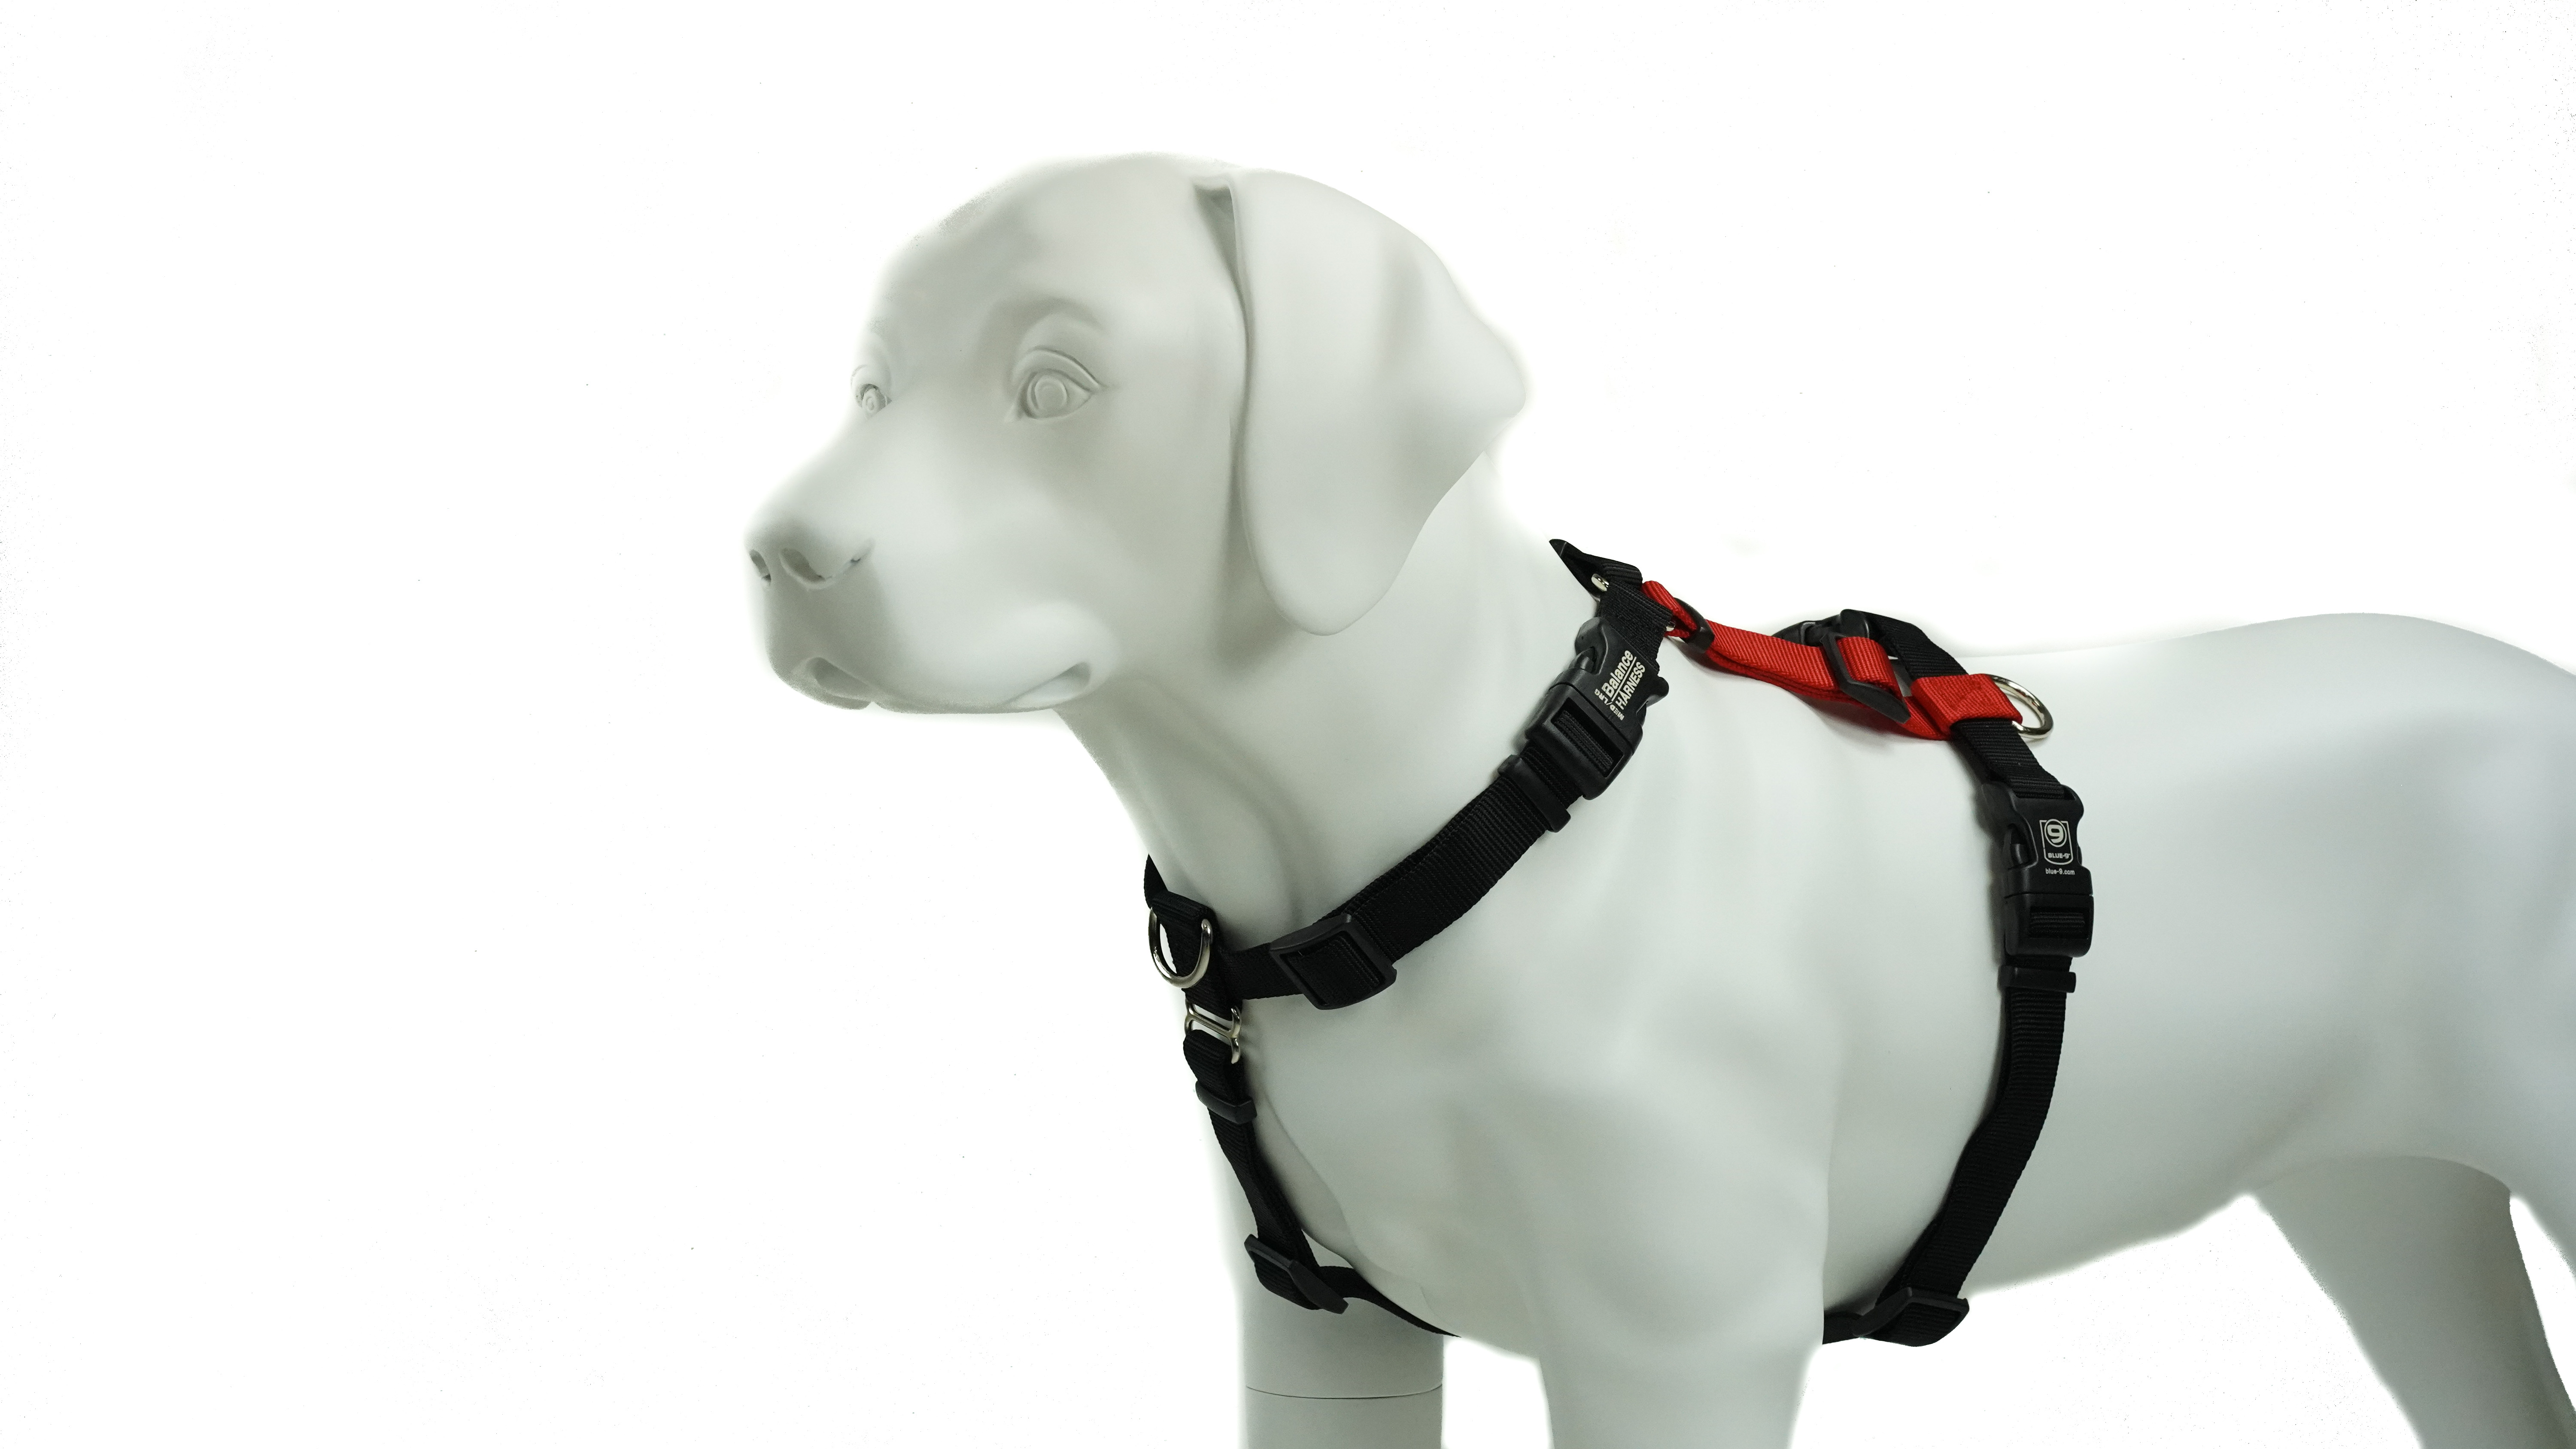 Blue-9 Balance Harness Buckle-Neck Dog Harness, Red, Small